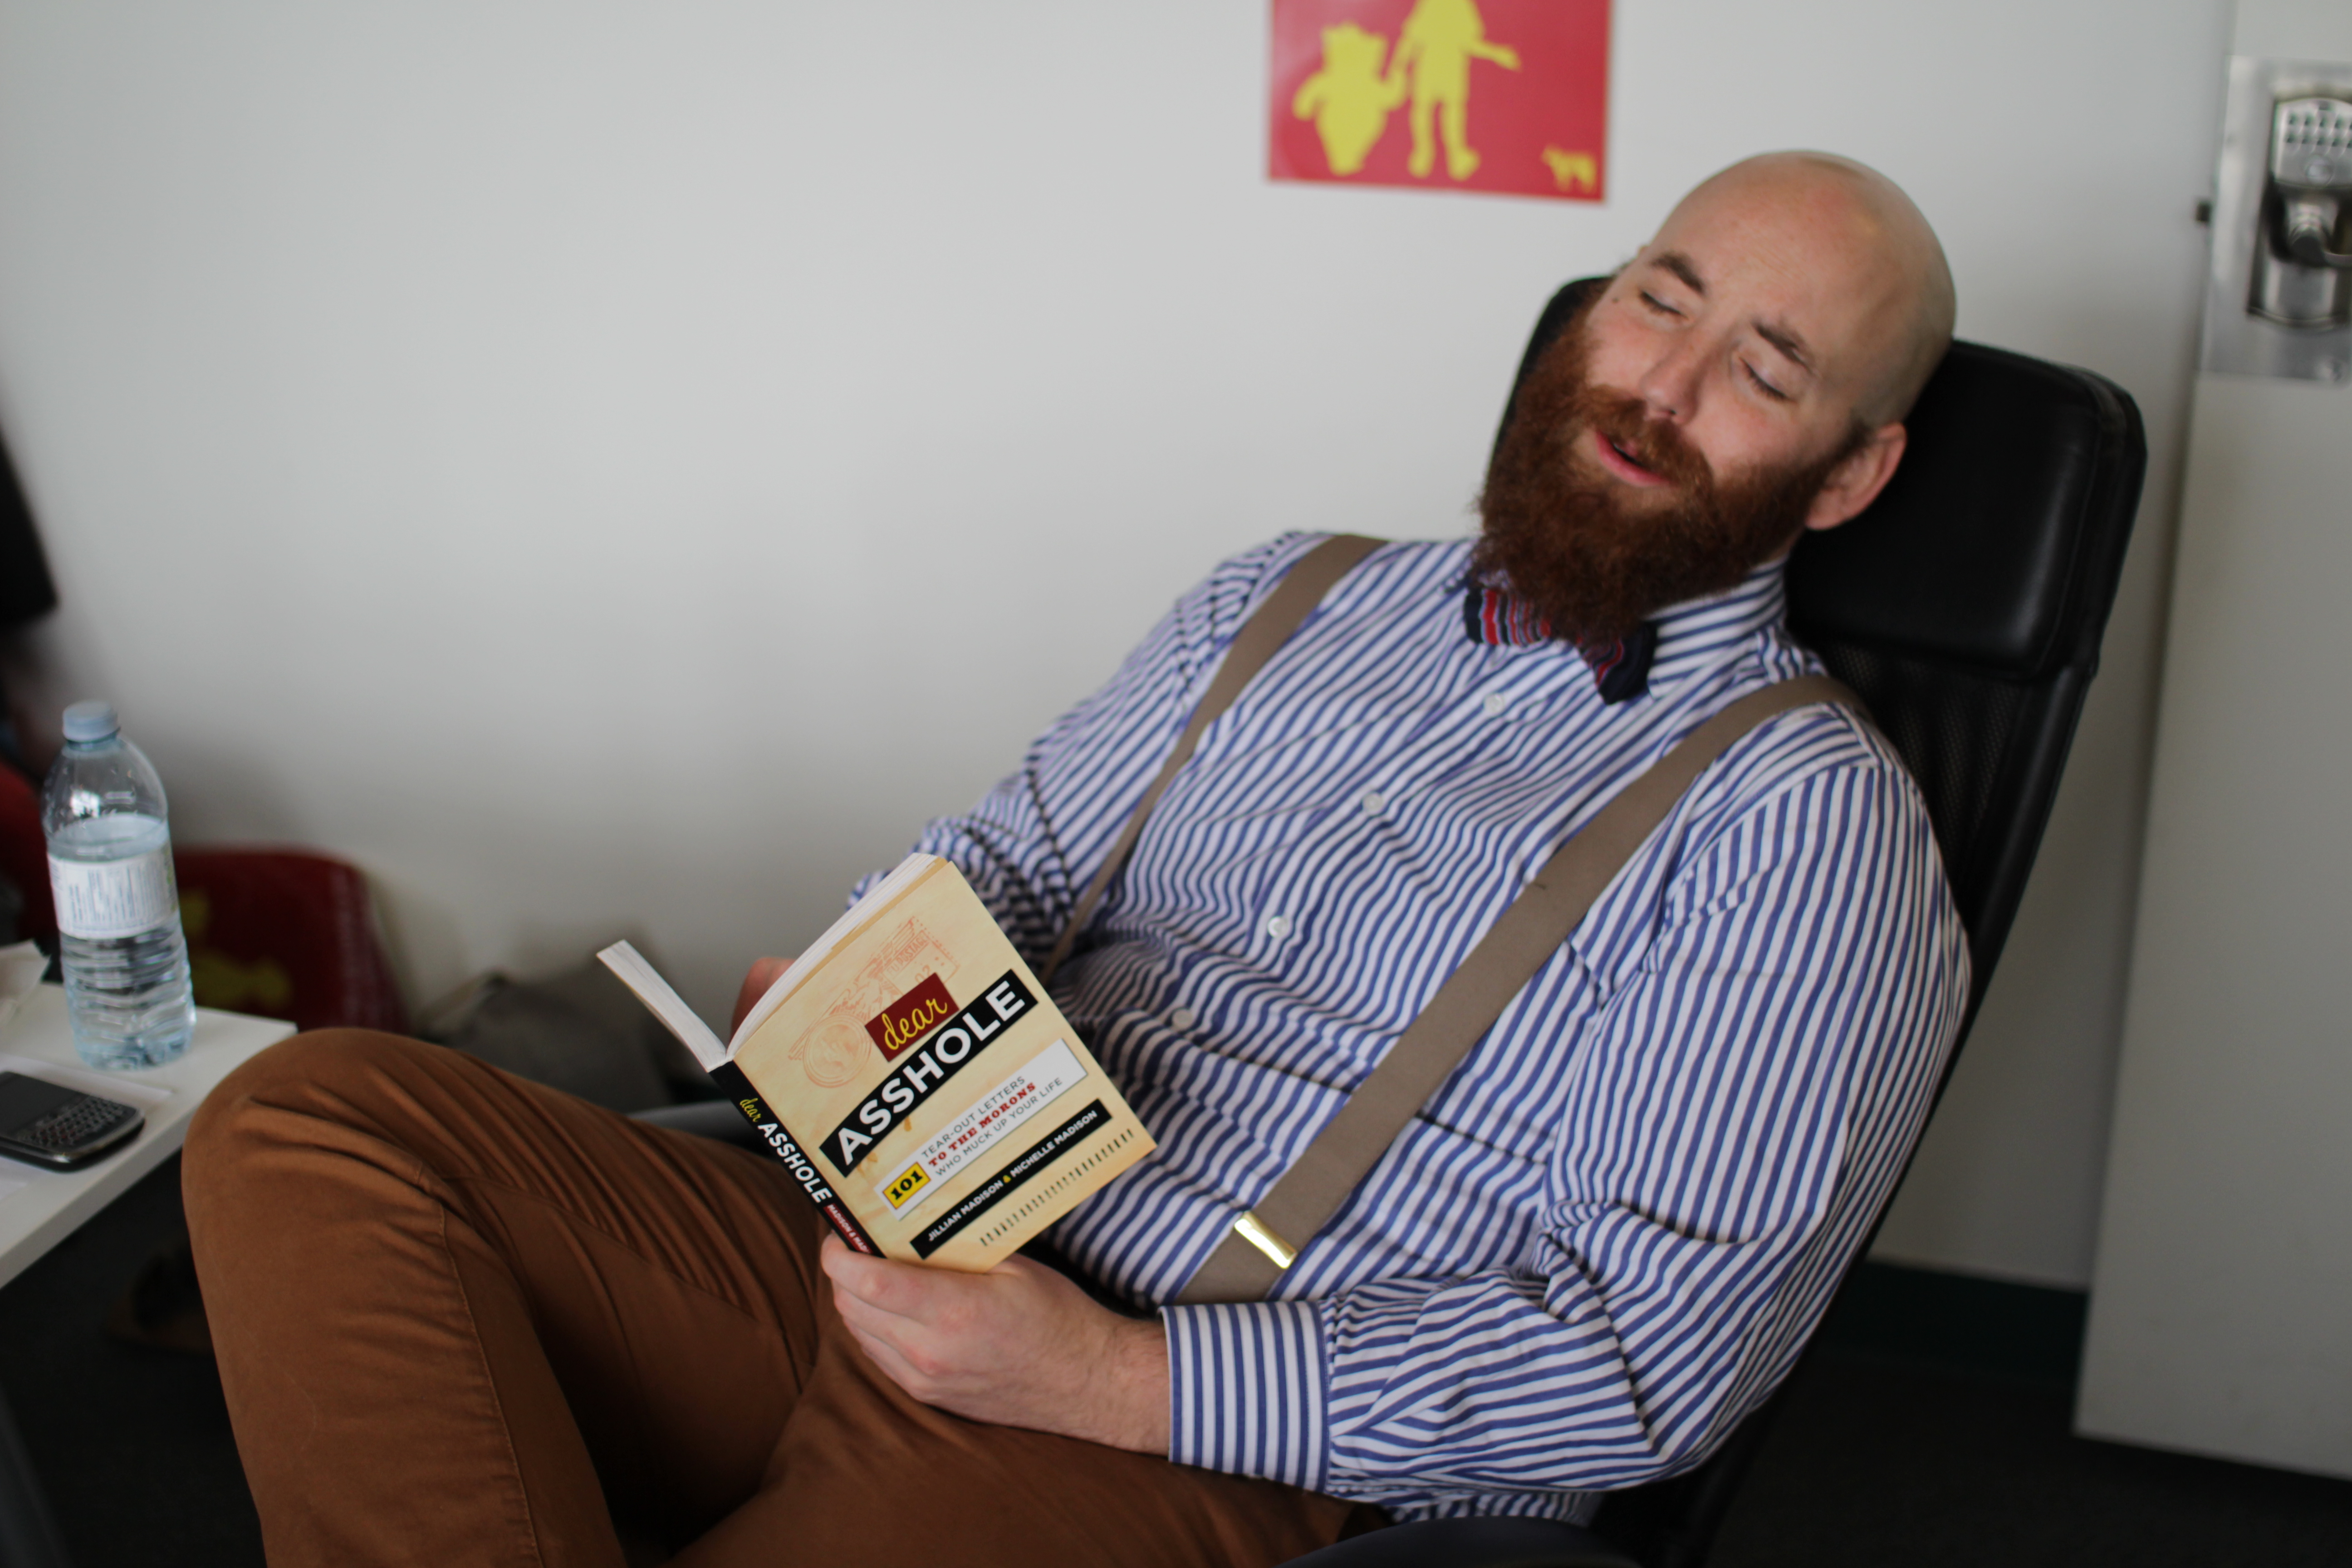 Professional Stock Photos-the im ammused by a good book